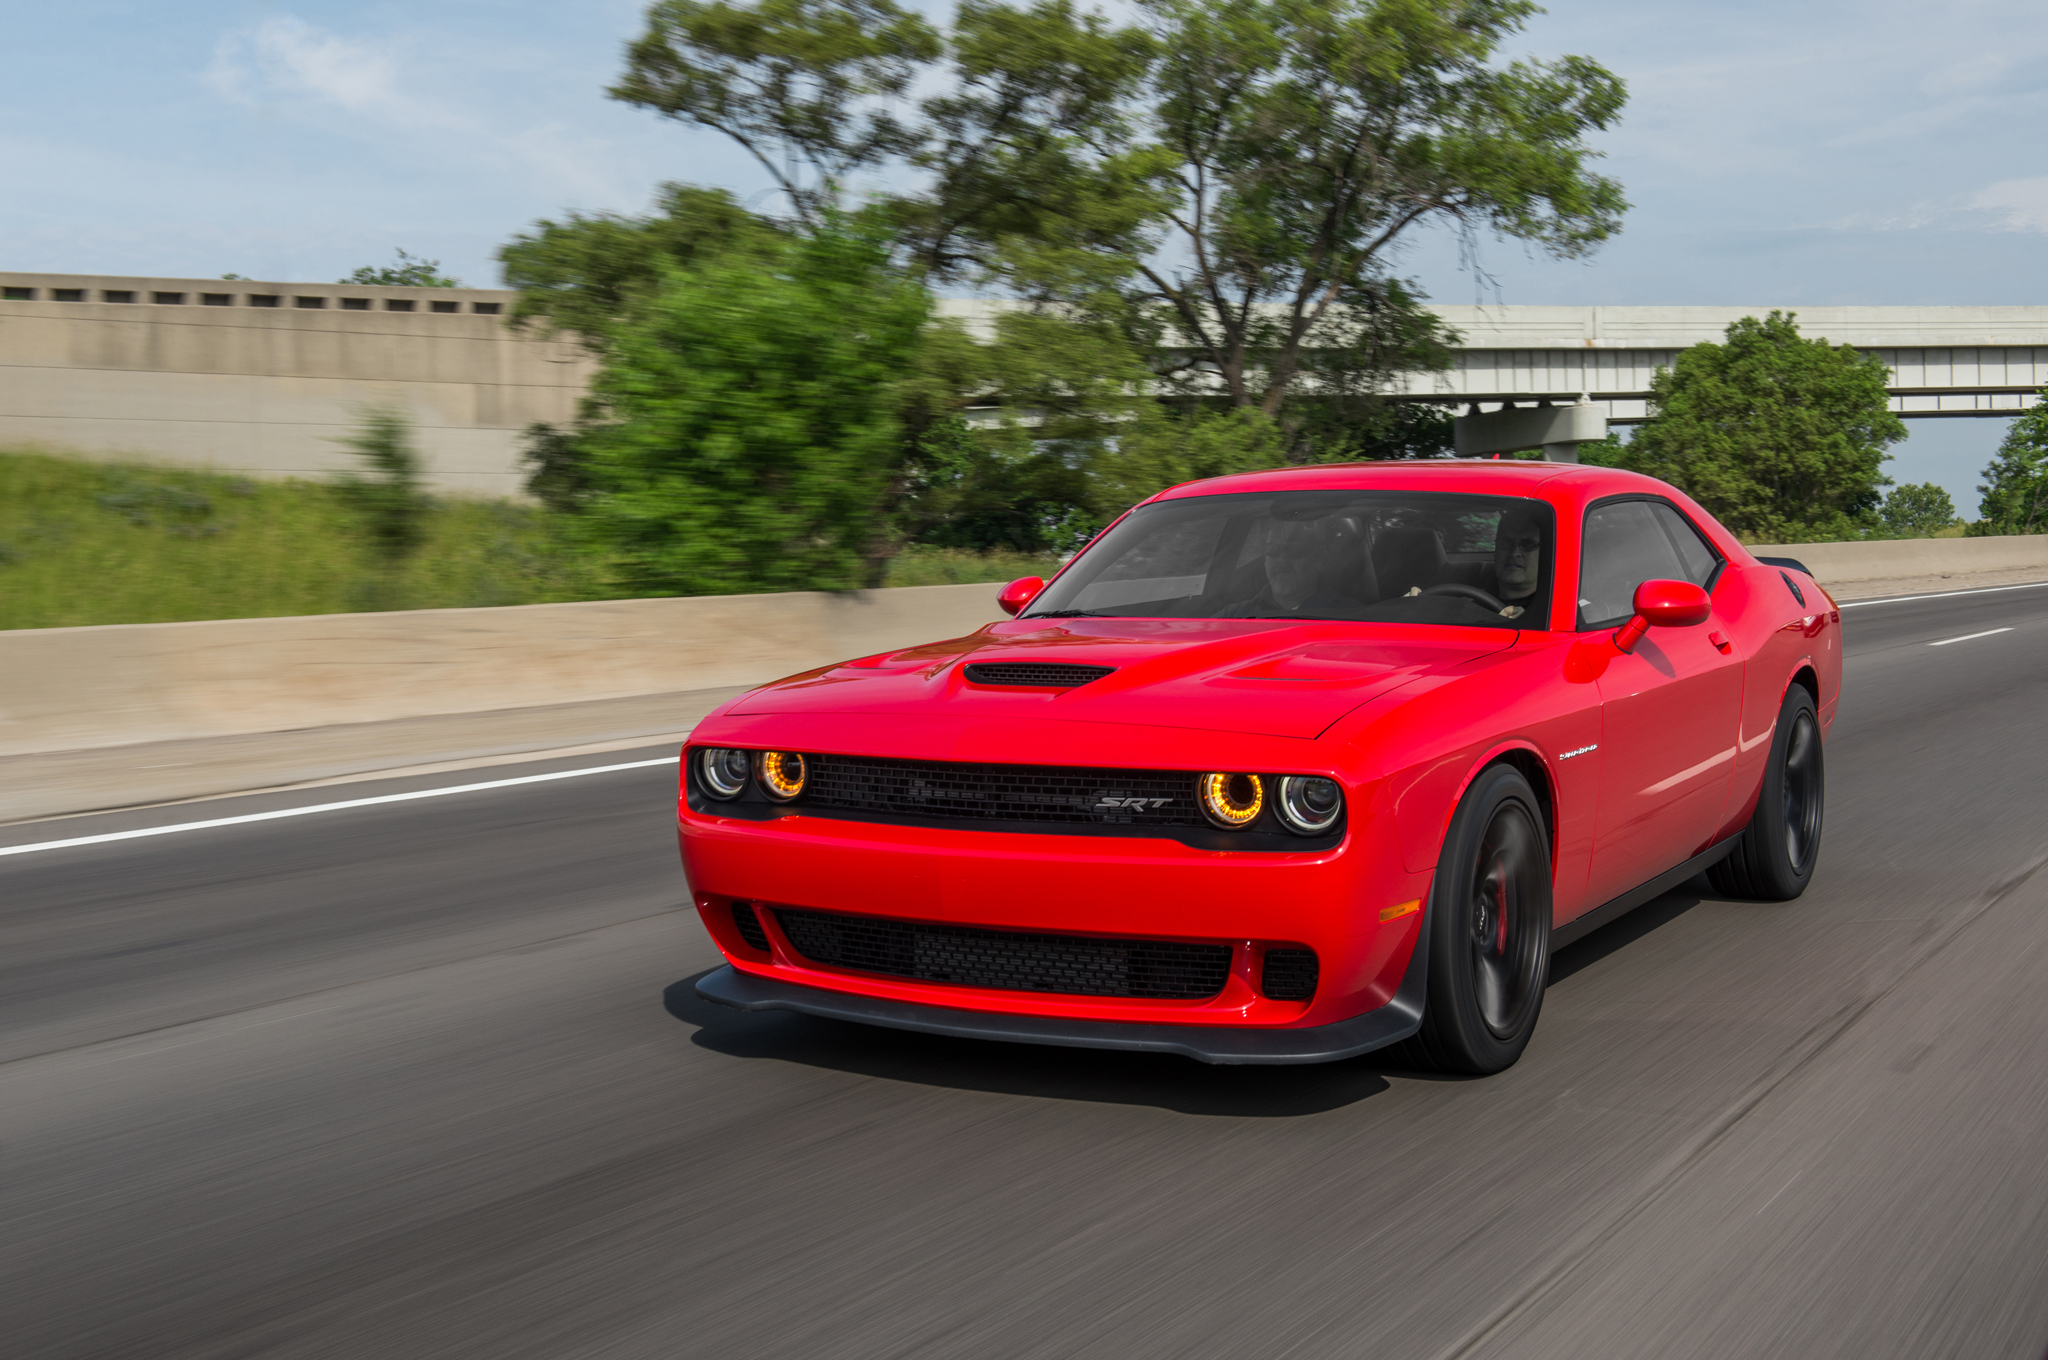 2015 dodge challenger srt hellcat makes astounding 707 hp, 650 lb ft